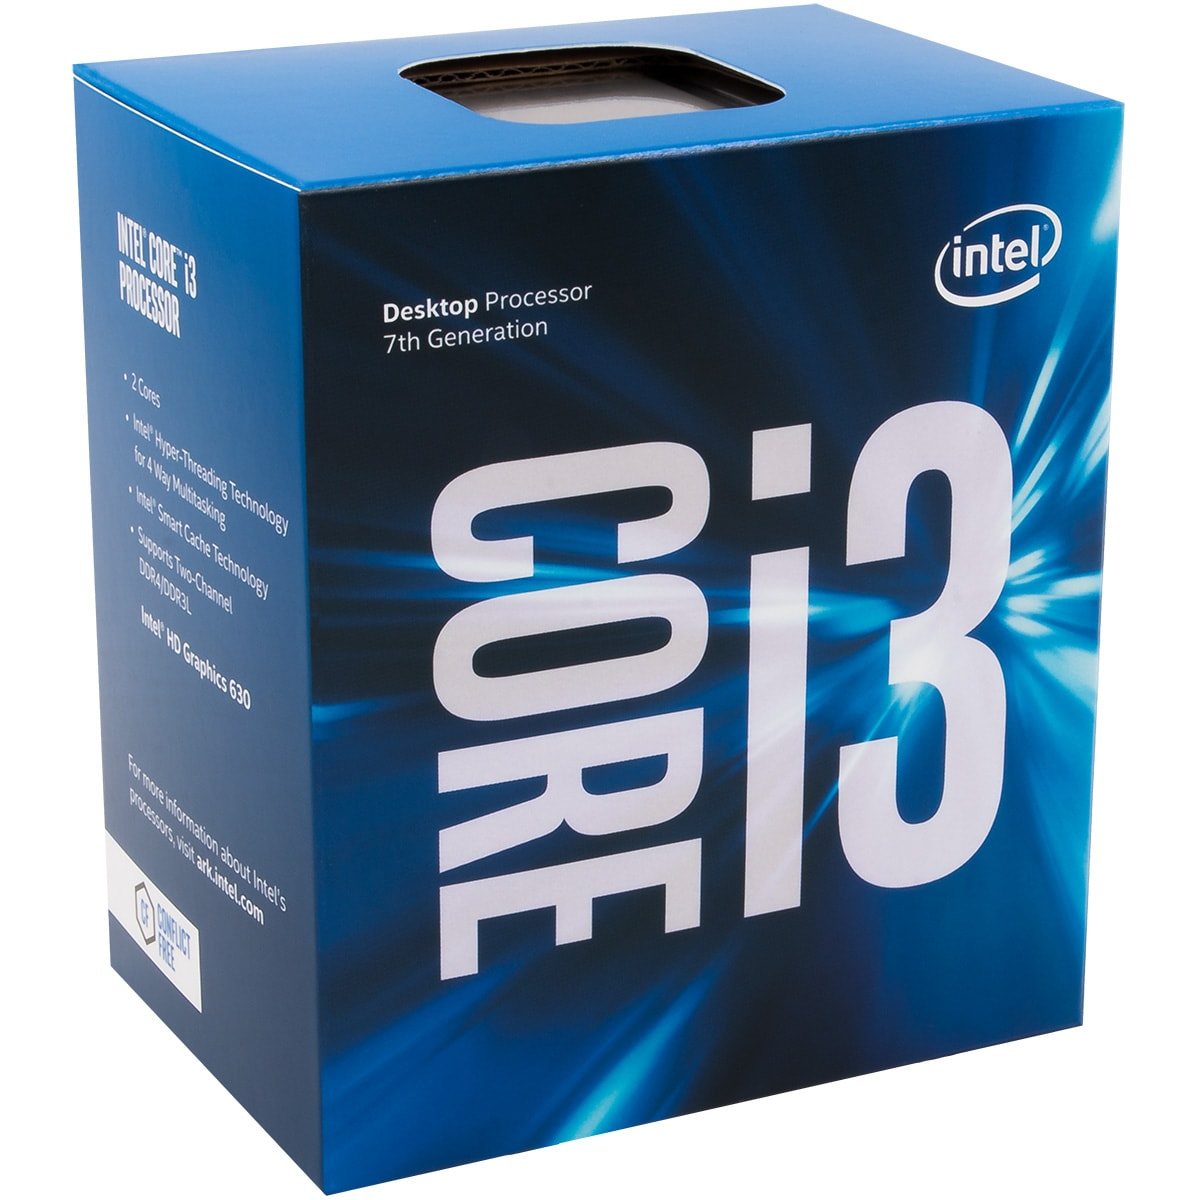 Intel Core i3 7320 - 4.1GHz - Processeur Intel - Cybertek.fr - 0